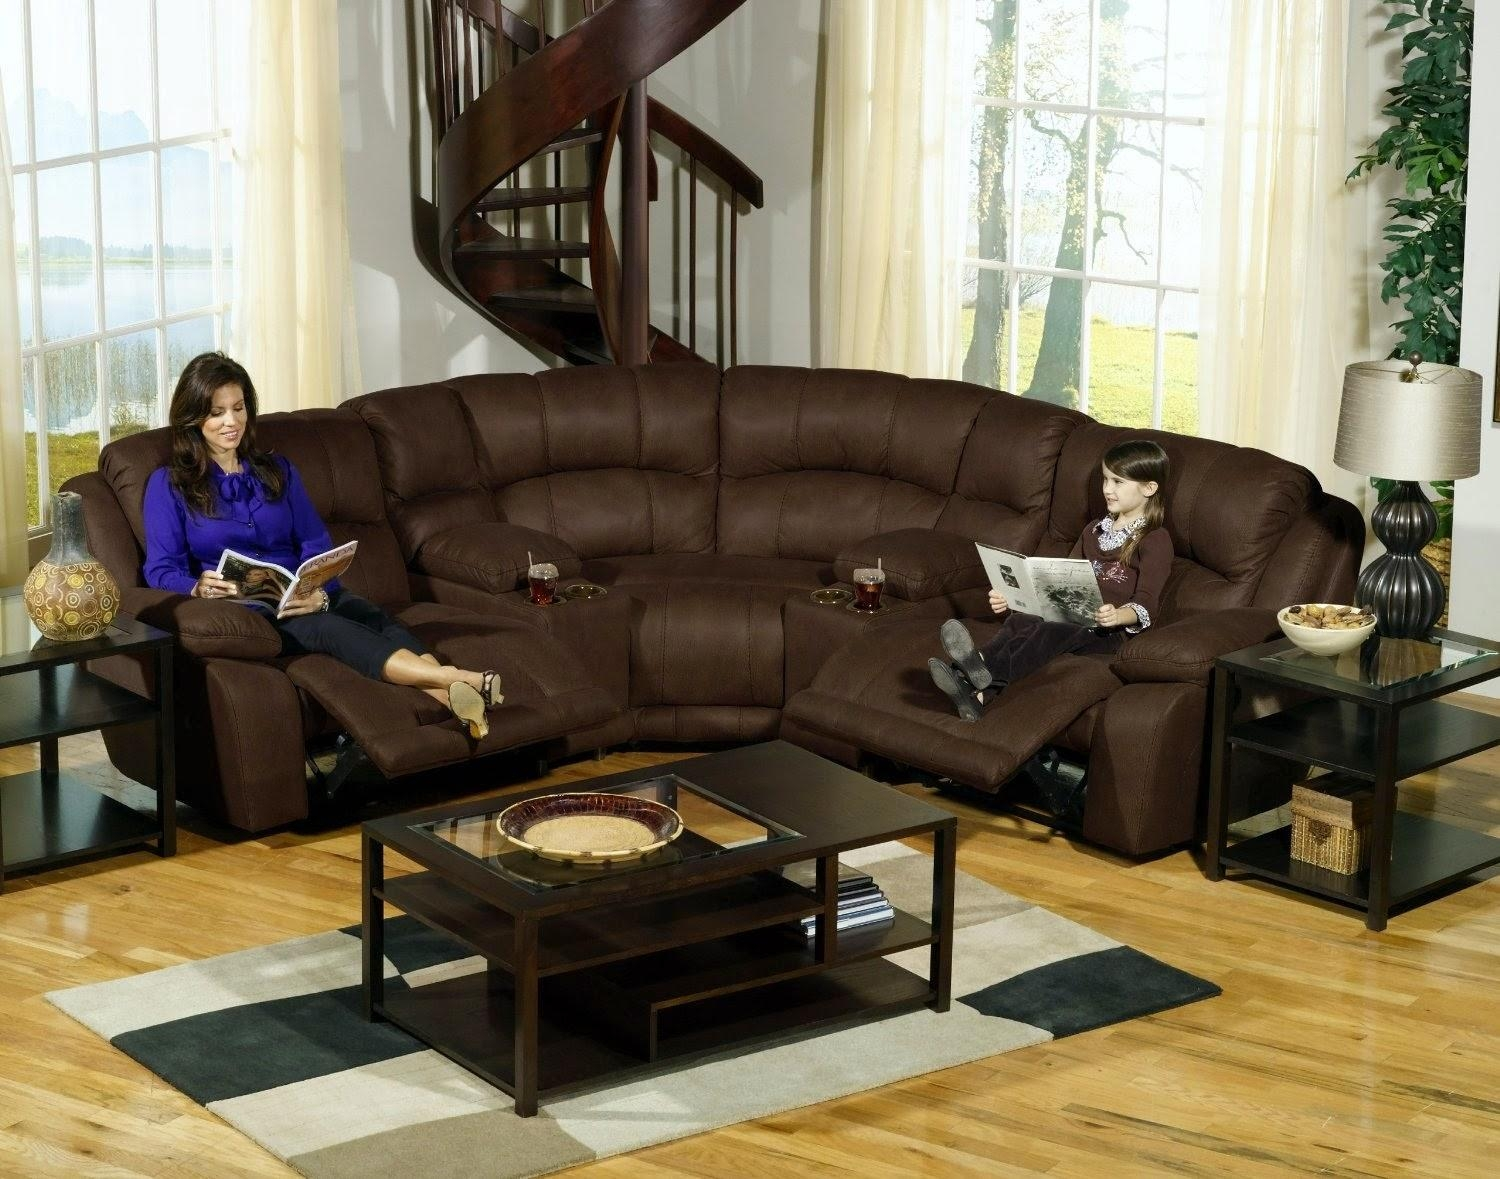 Furniture: Fantastic Sectional Couches With Recliners For Your With Regard To Small Microfiber Sectional (View 19 of 20)